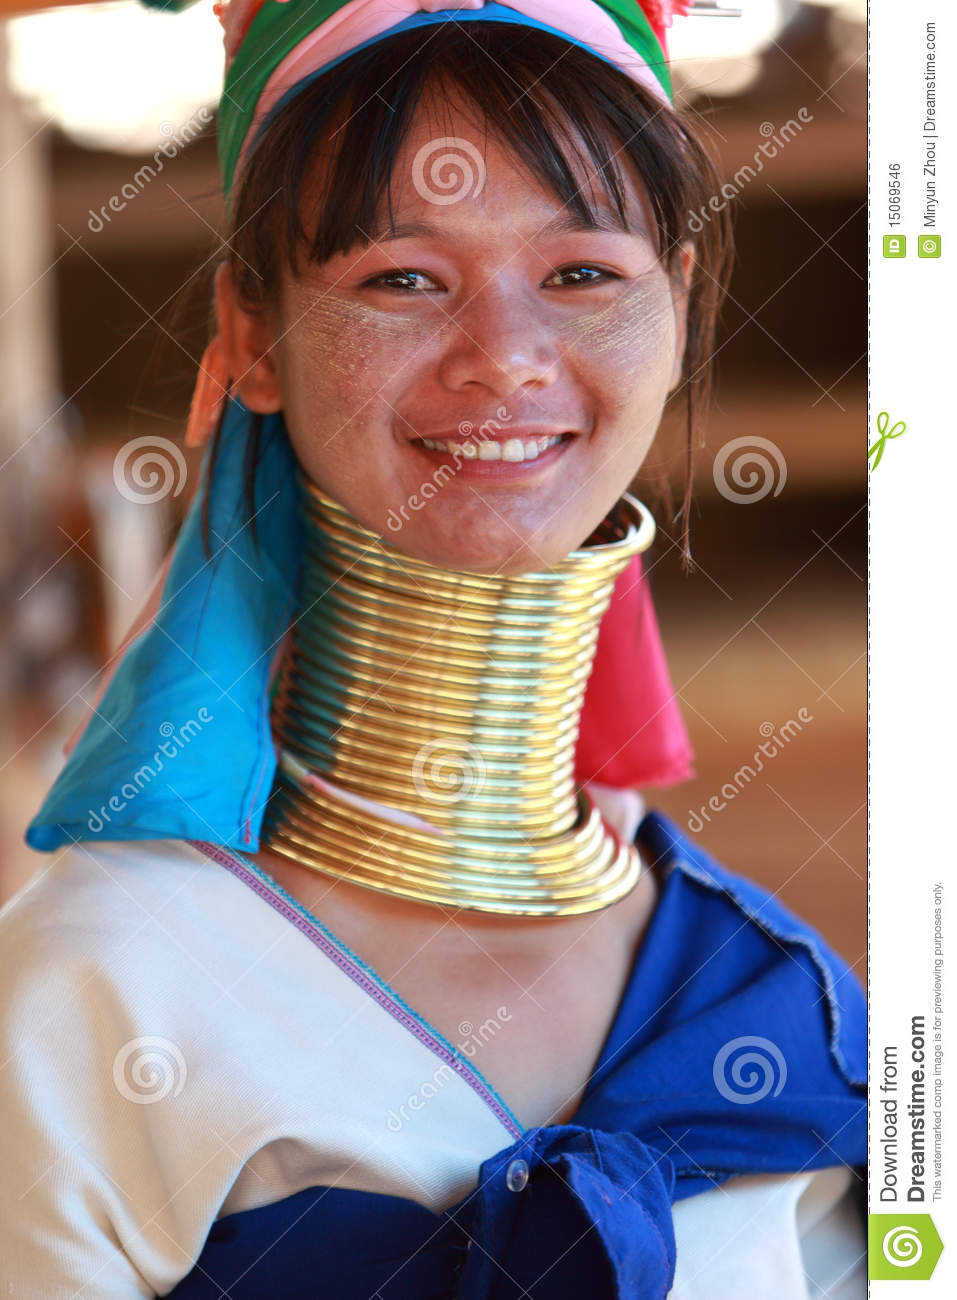 Long neck in thailand essay